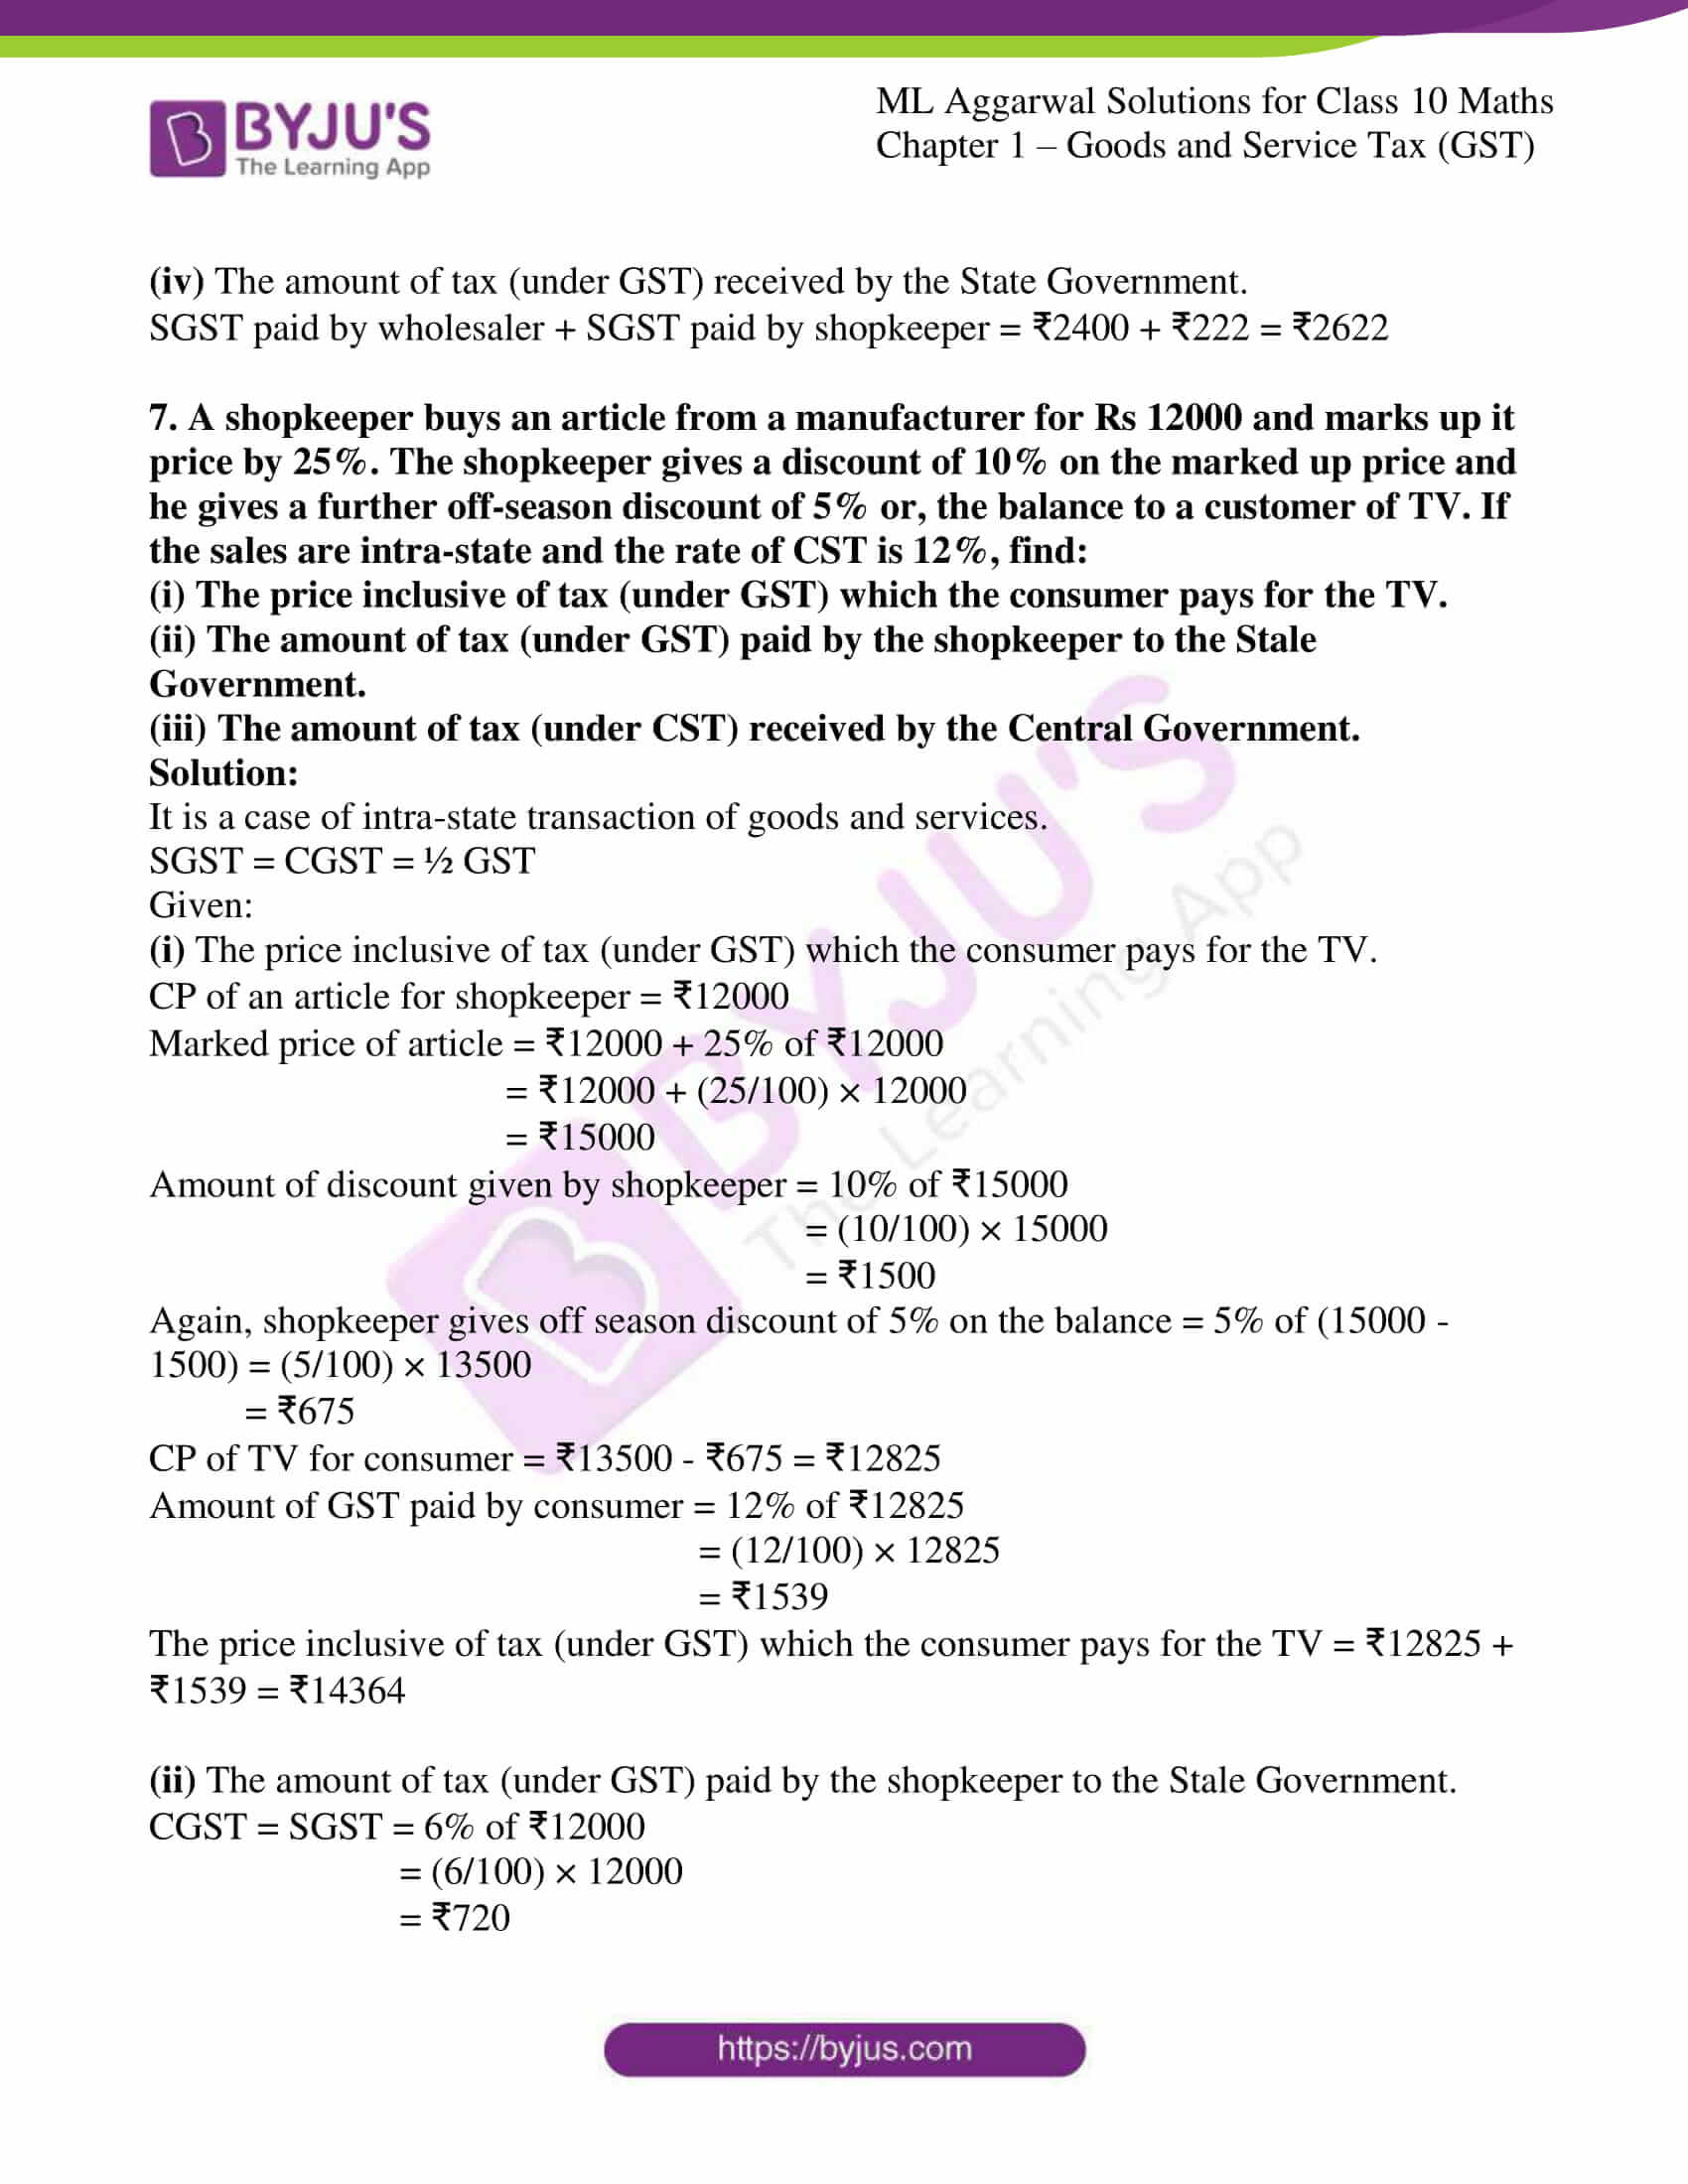 ml aggarwal solutions class 10 maths chapter 1 08